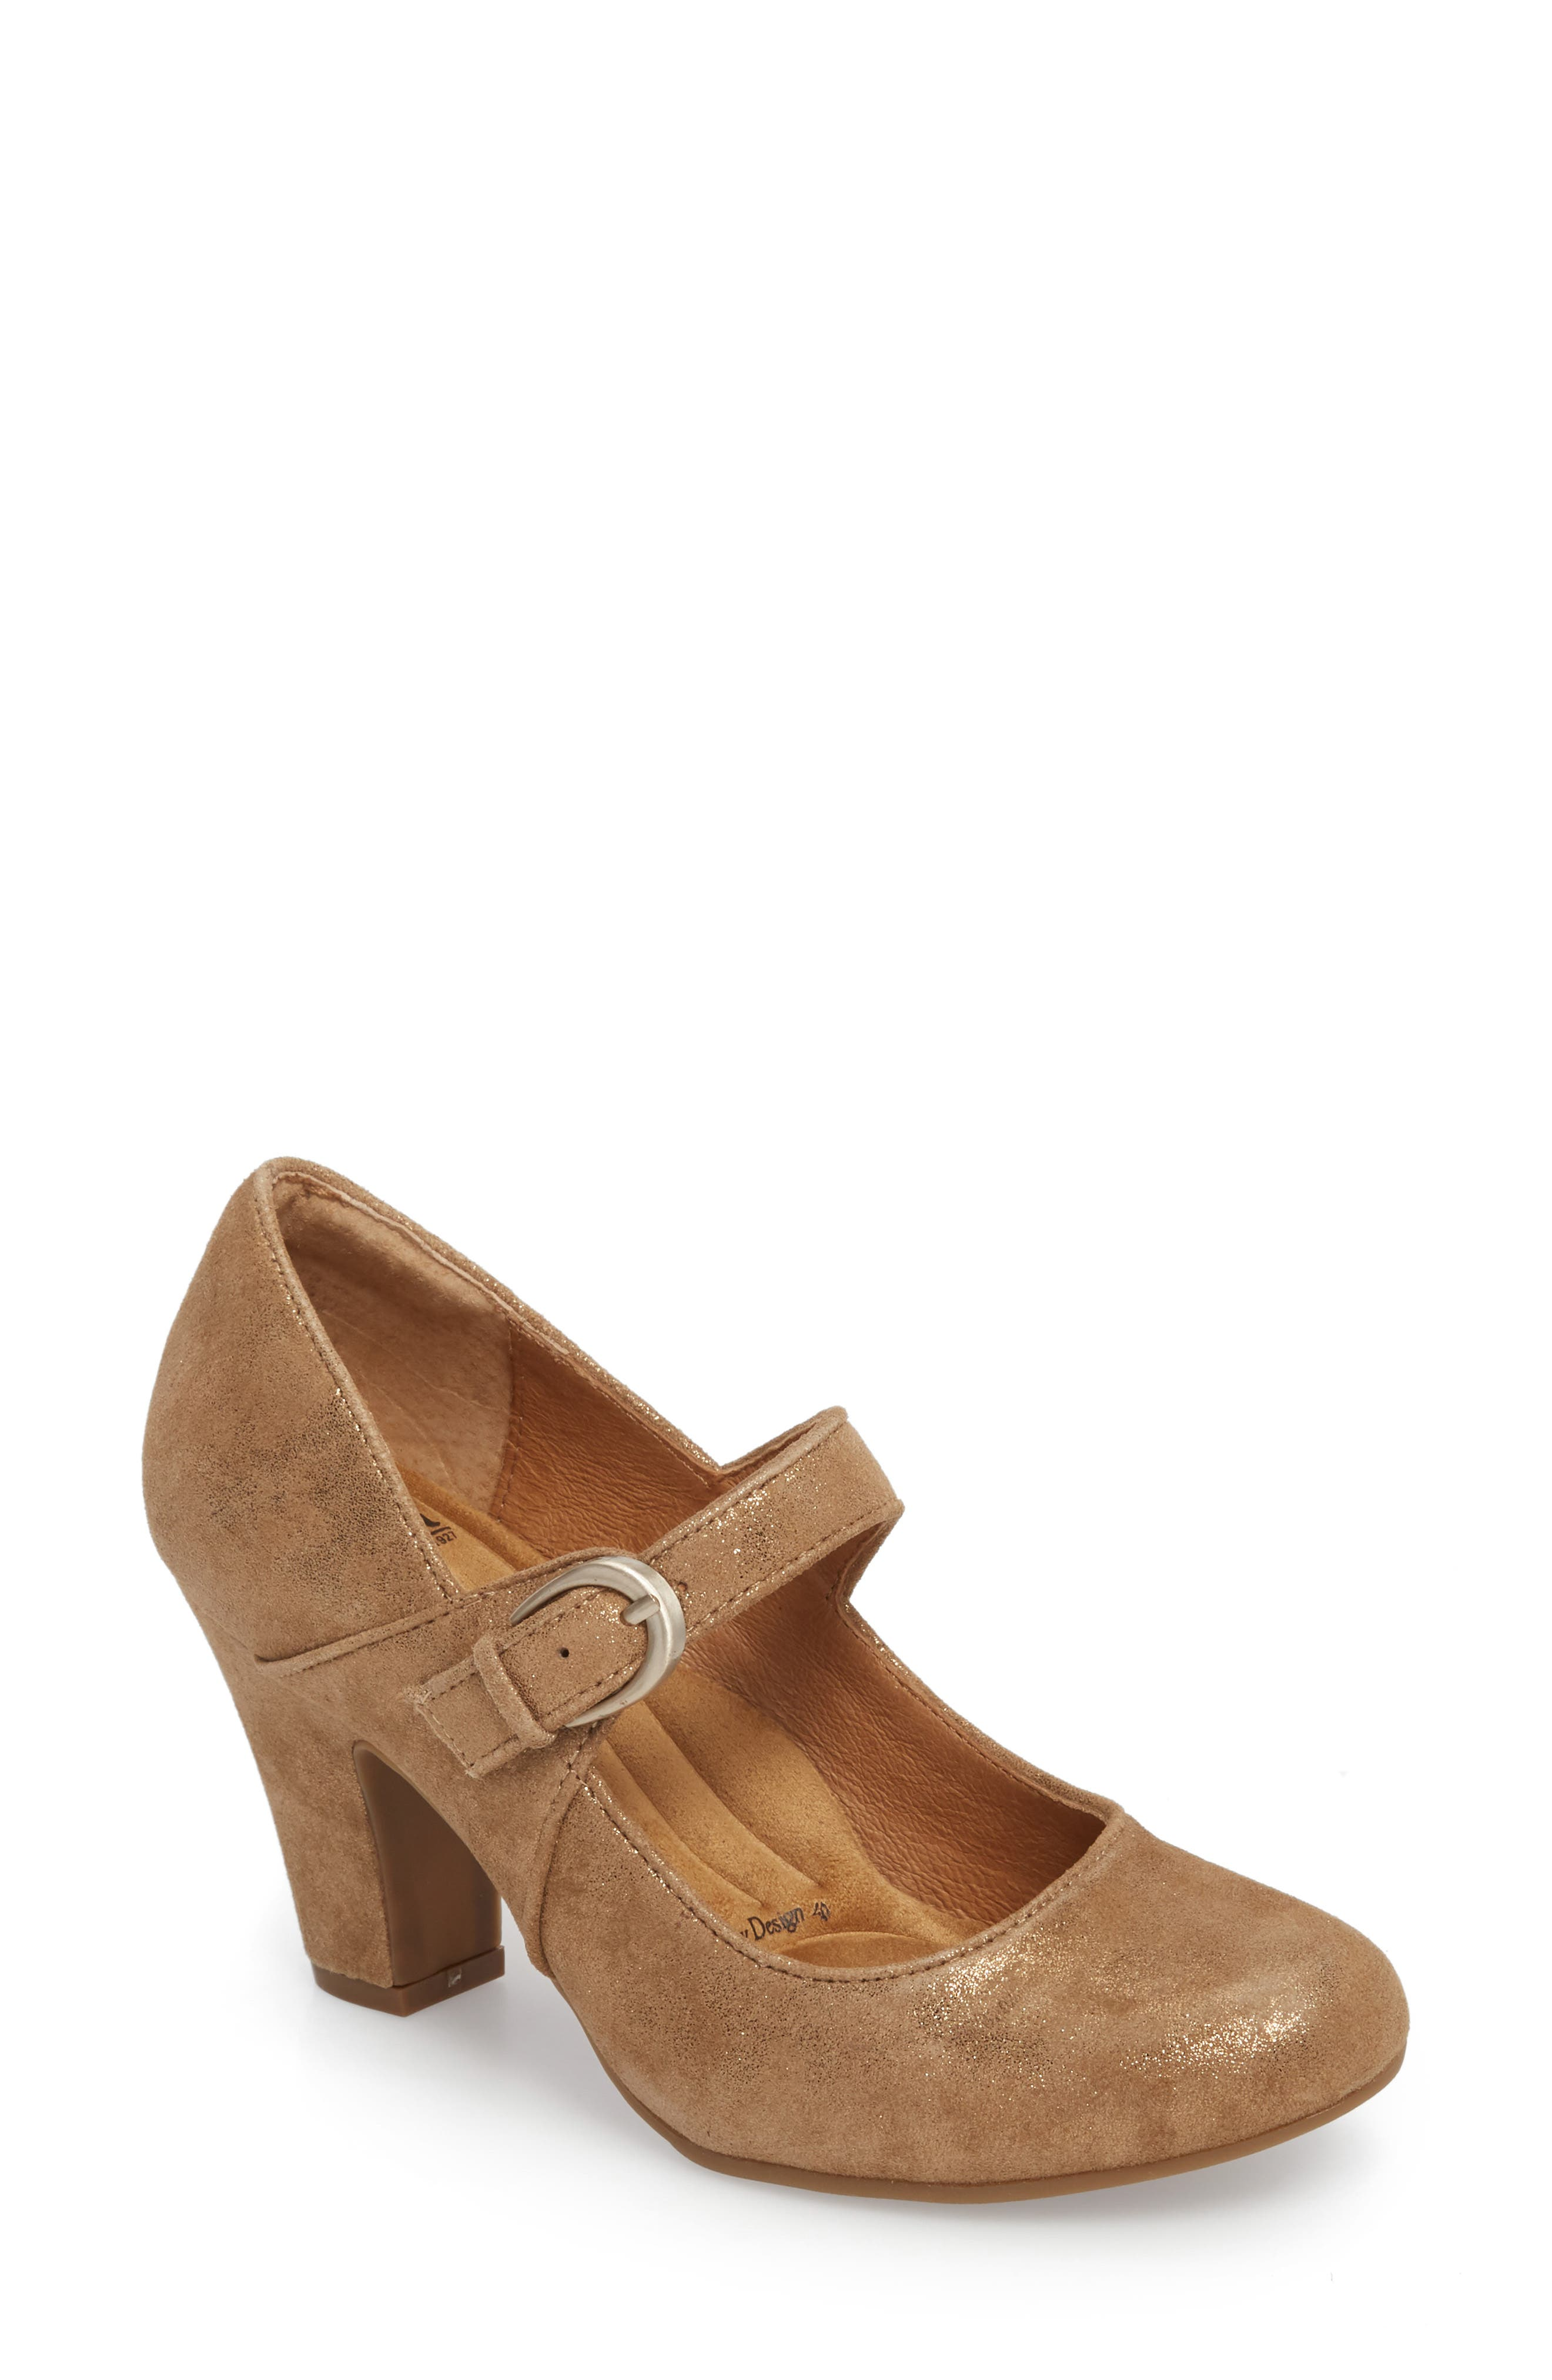 'Miranda' Mary Jane Pump,                             Main thumbnail 1, color,                             Gold Distressed Foil Suede